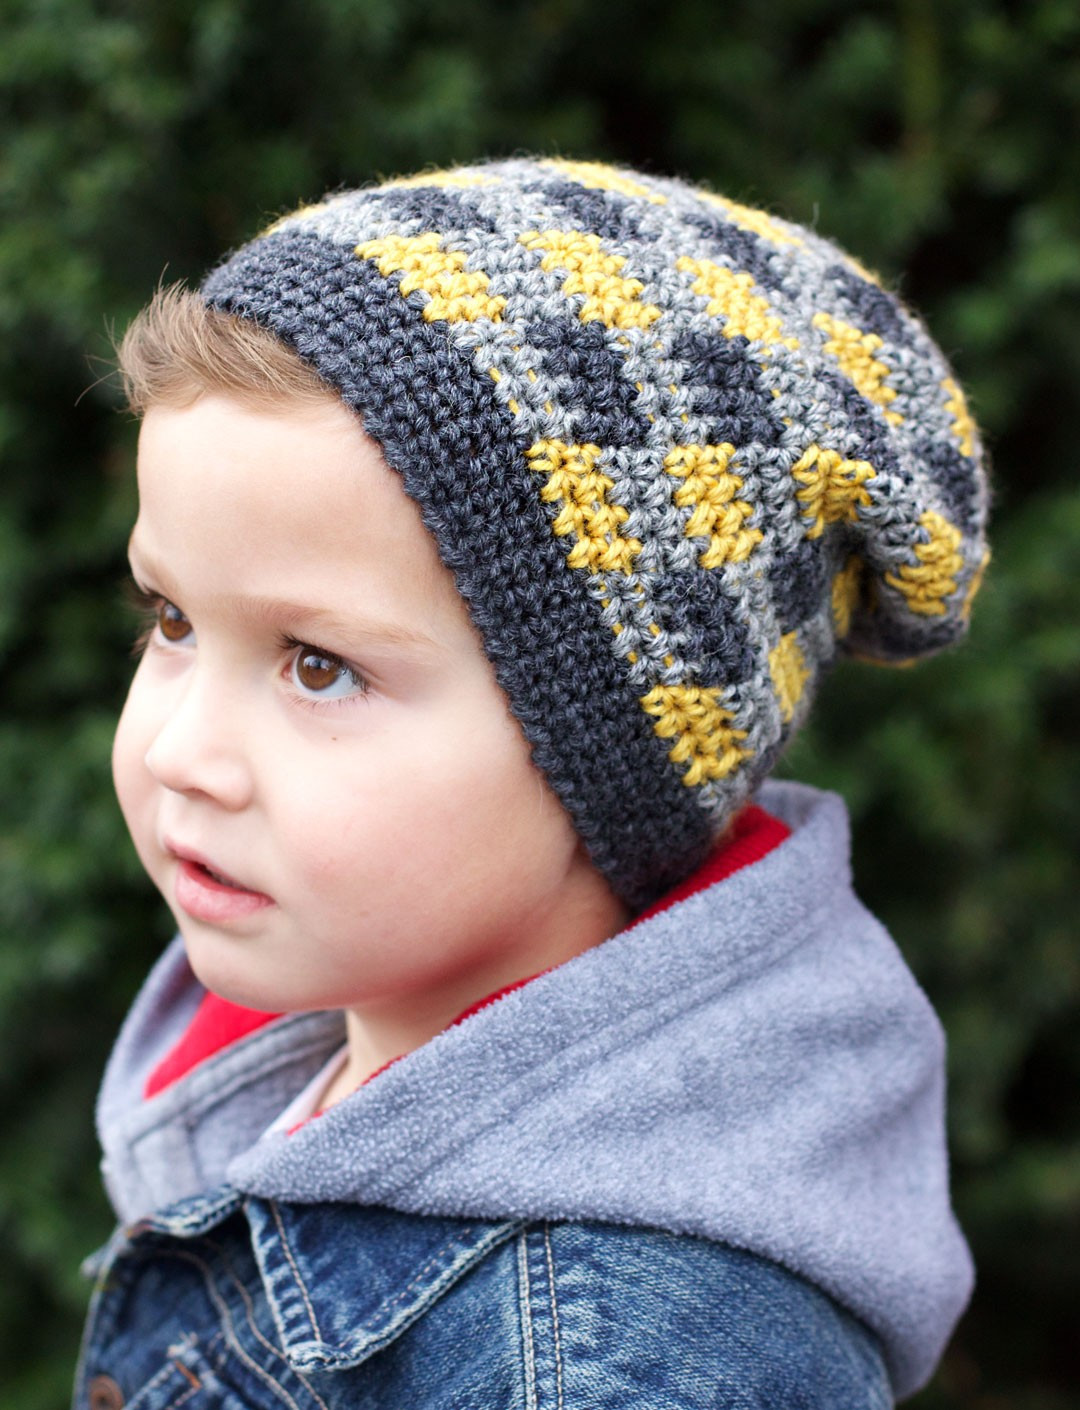 Fresh Slouchy Baby Beanie Crochet Pattern Crochet toddler Beanie Of Delightful 40 Ideas Crochet toddler Beanie